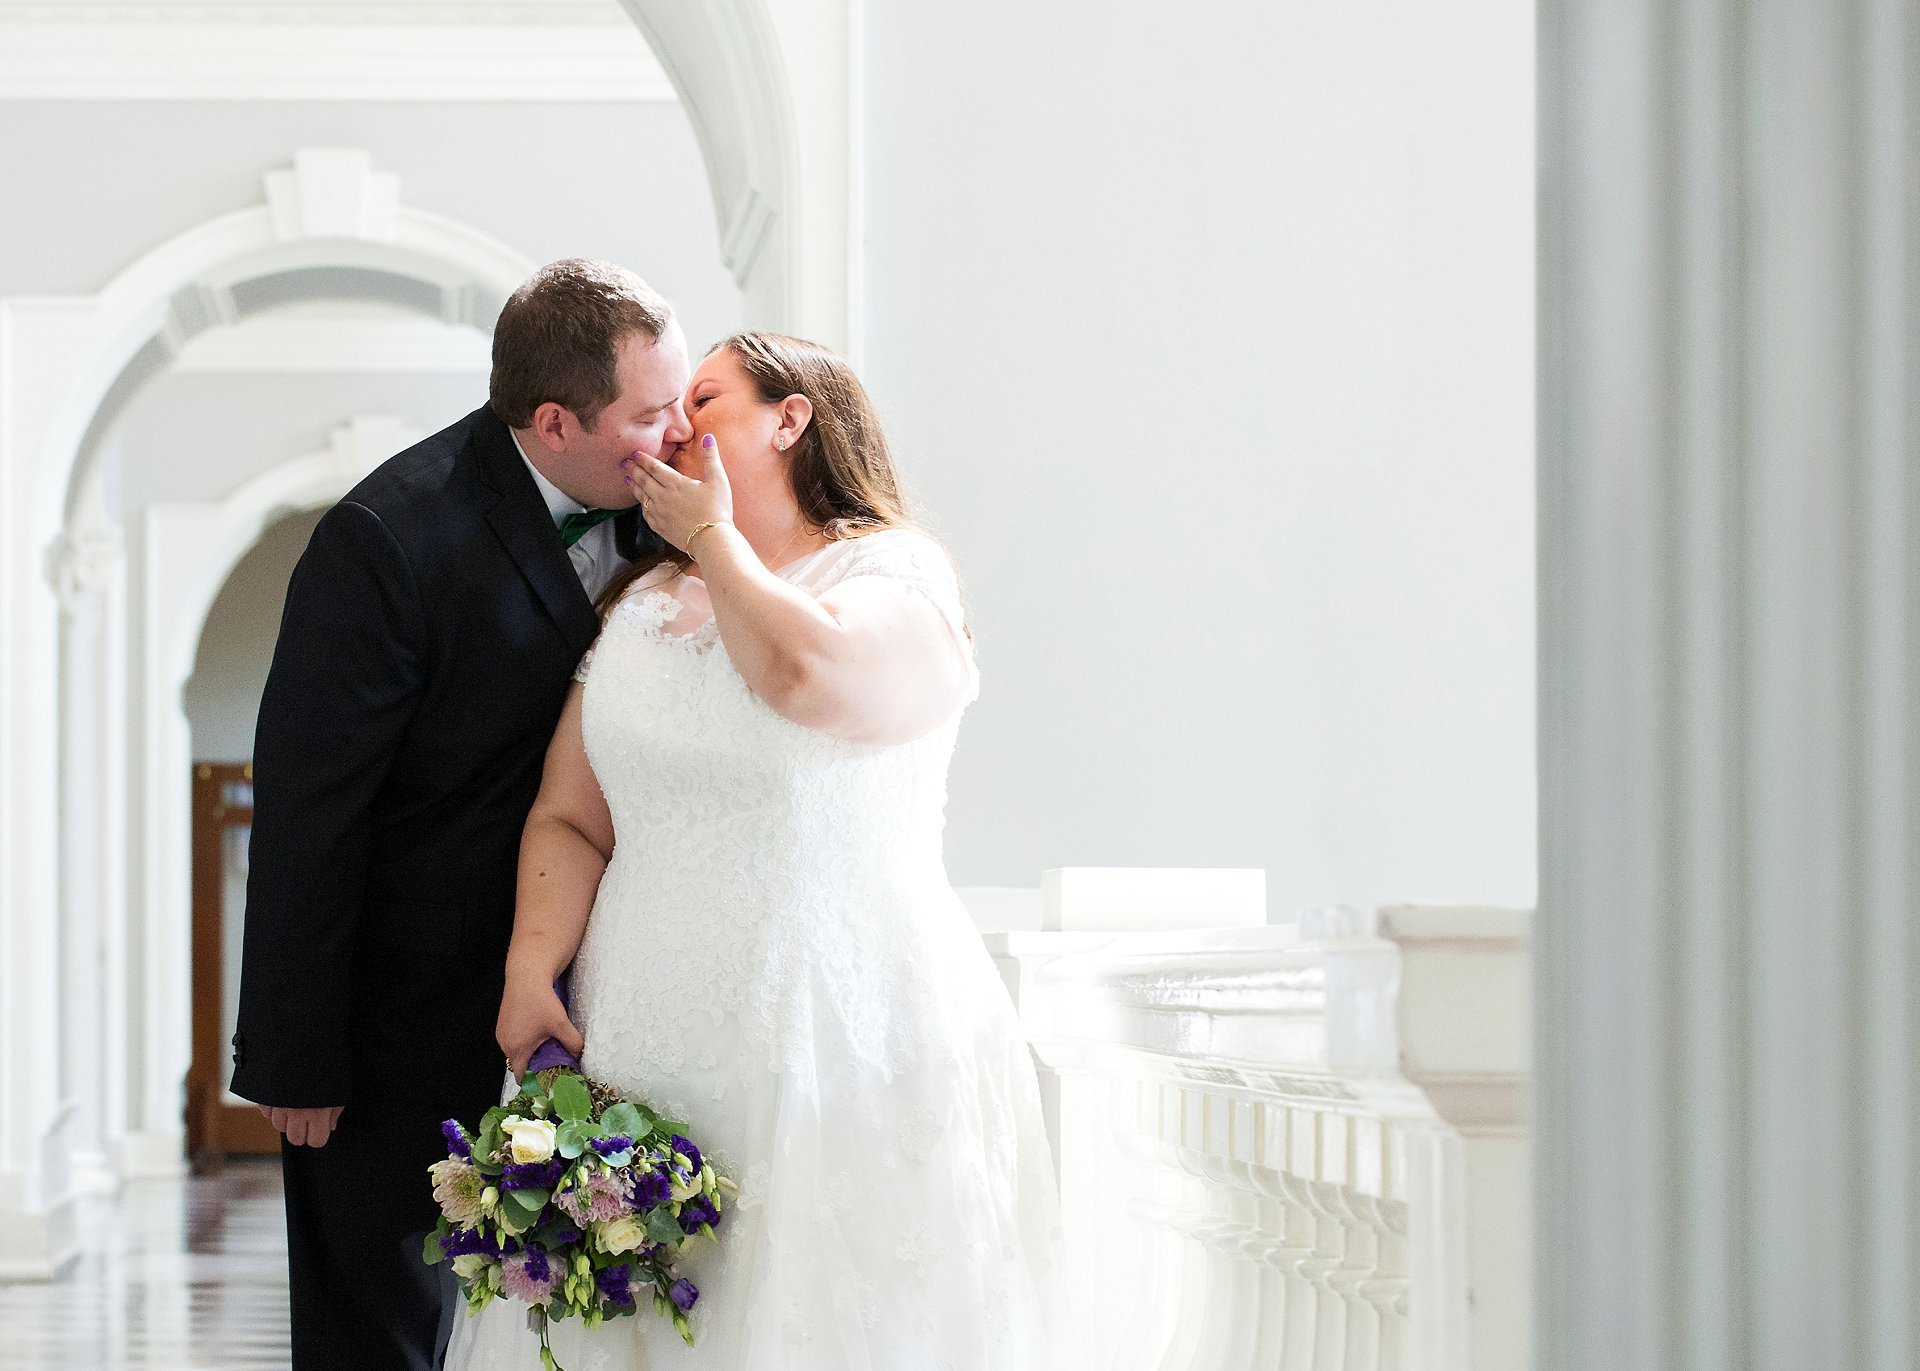 The bride and groom kiss during their couple portrait photography session after their Greenwich wedding